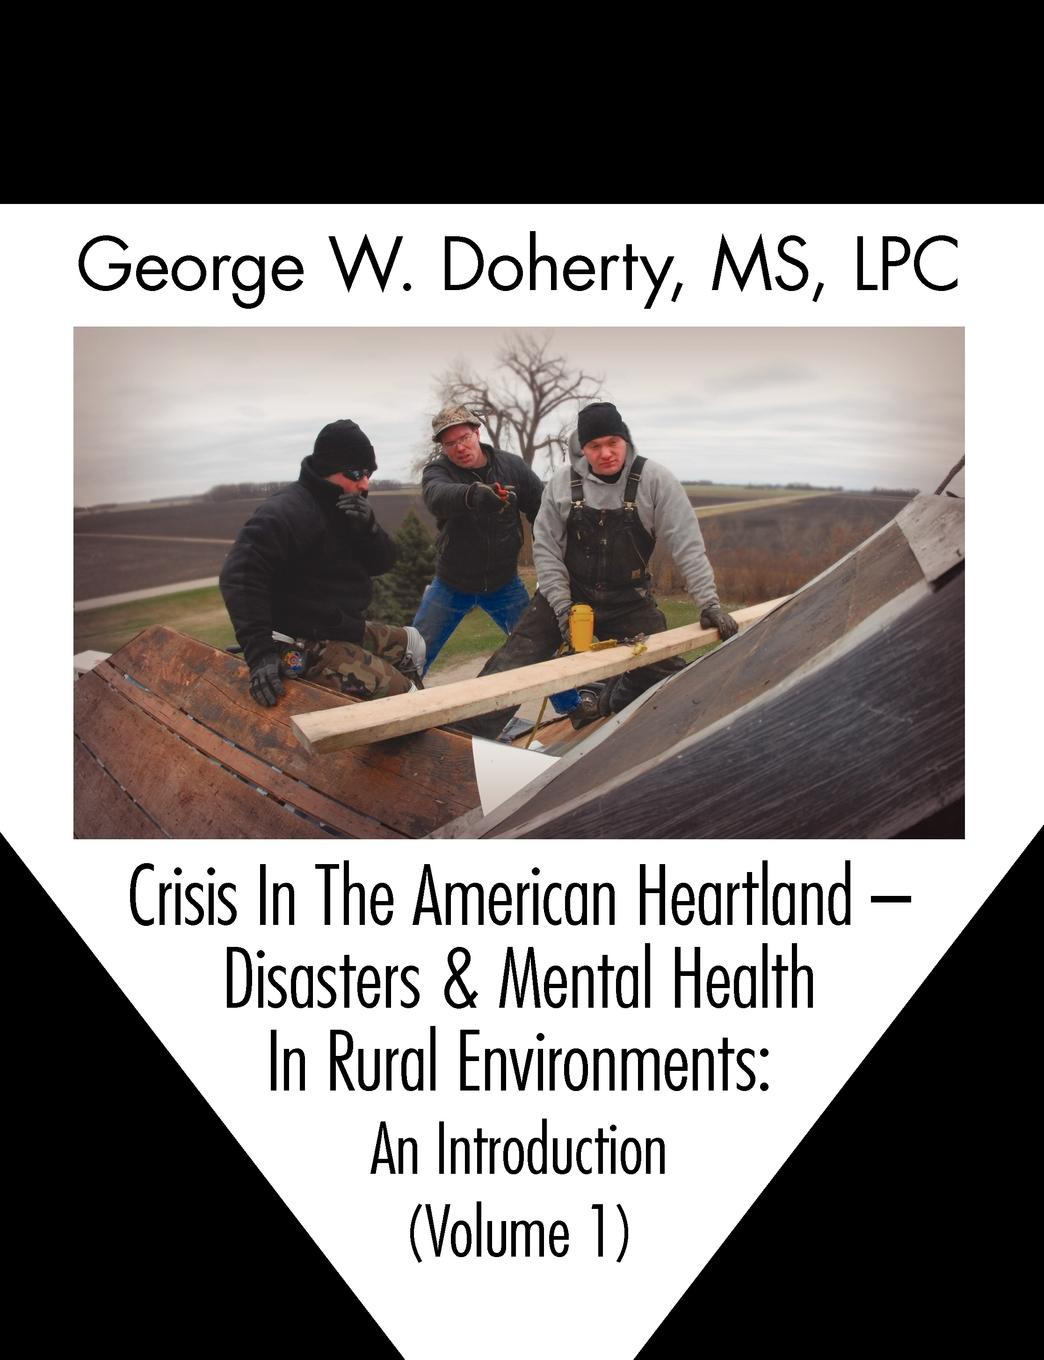 George W. Doherty Crisis in the American Heartland. Disasters & Mental Health in Rural Environments -- An Introduction (Volume 1) entrepreneurial orientations of rural women